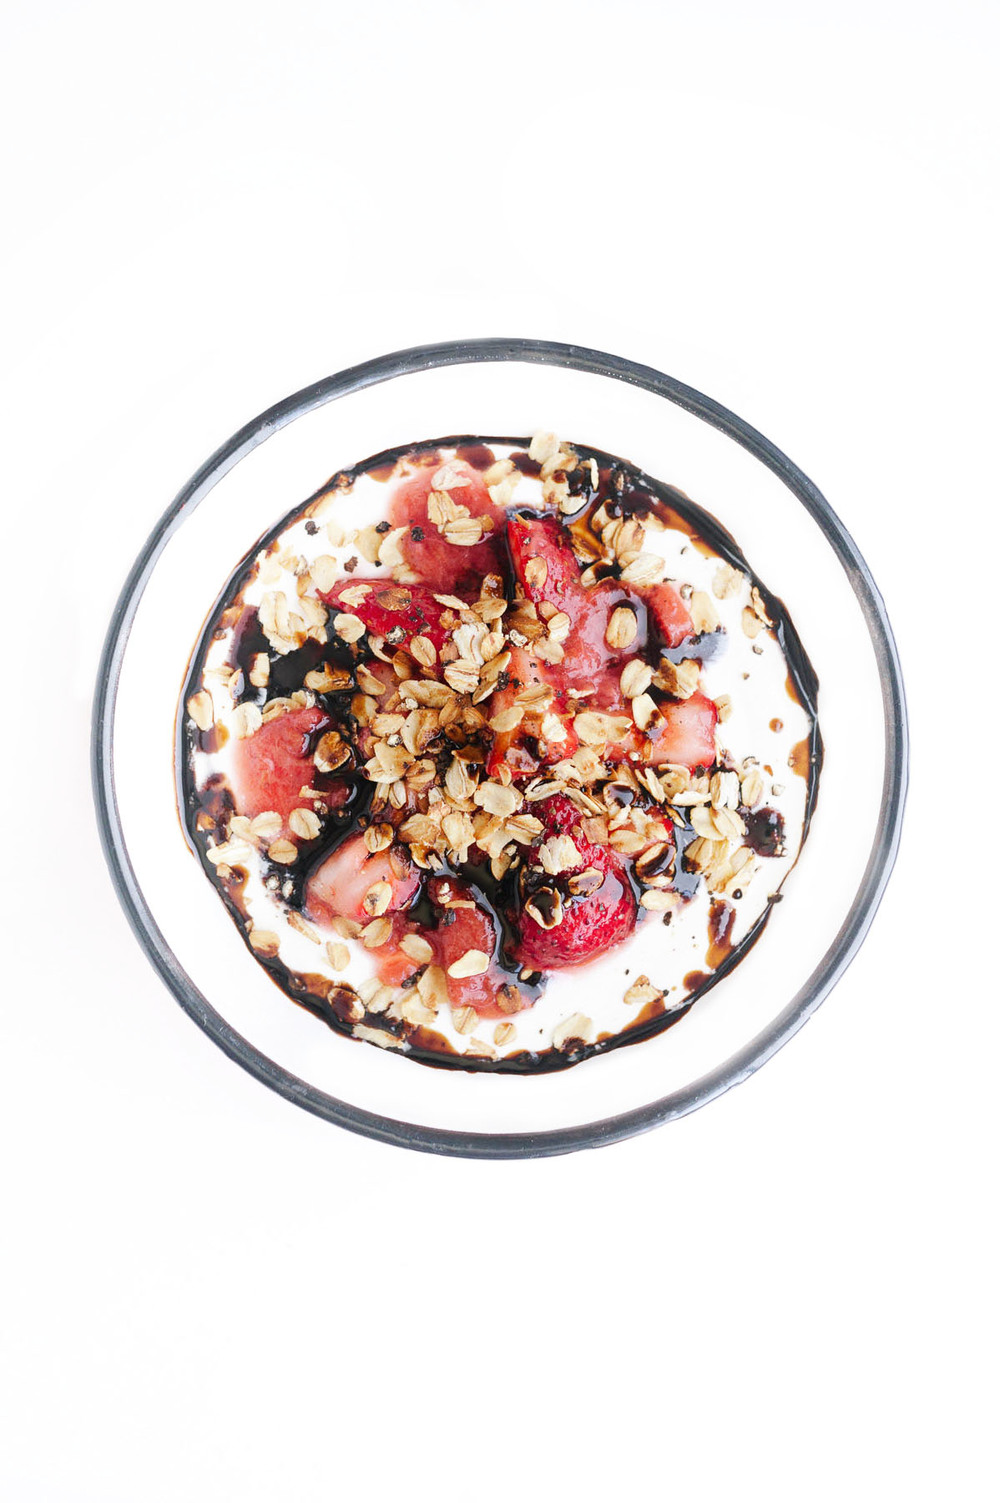 Strawberry Black Pepper Yogurt Bowl | Fresh strawberries + Strawberry Rhubarb Compote + Cracked Black Pepper + Buttered Oats + Balsamic